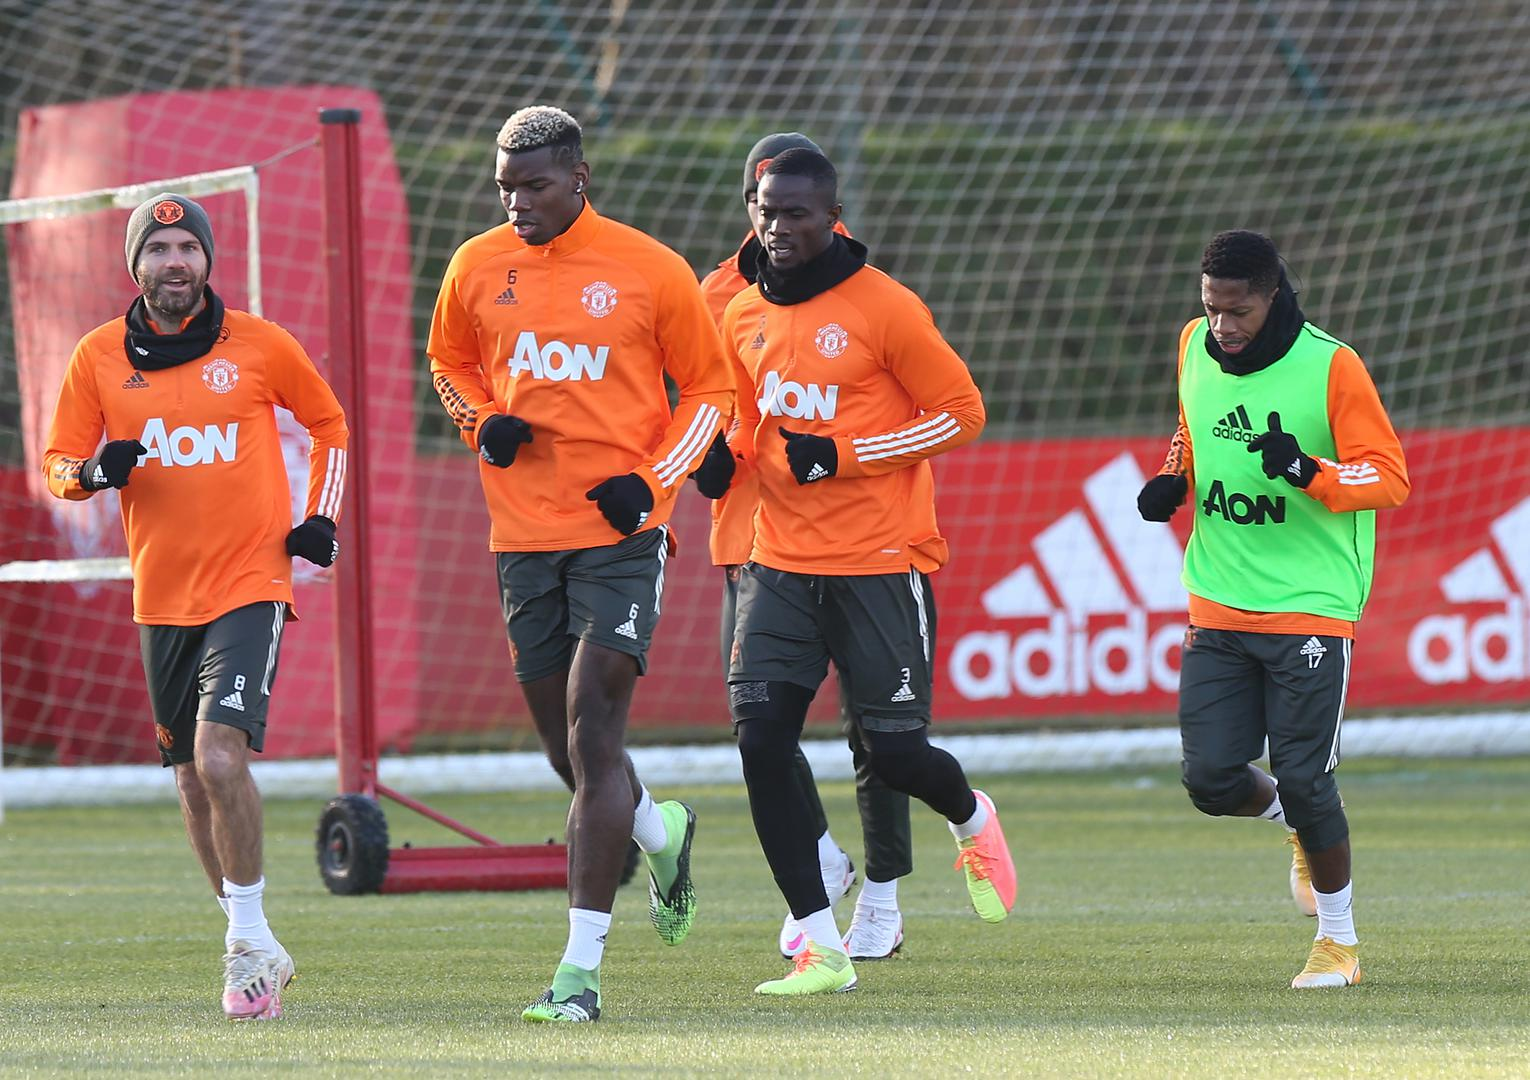 Manchester United players in training.